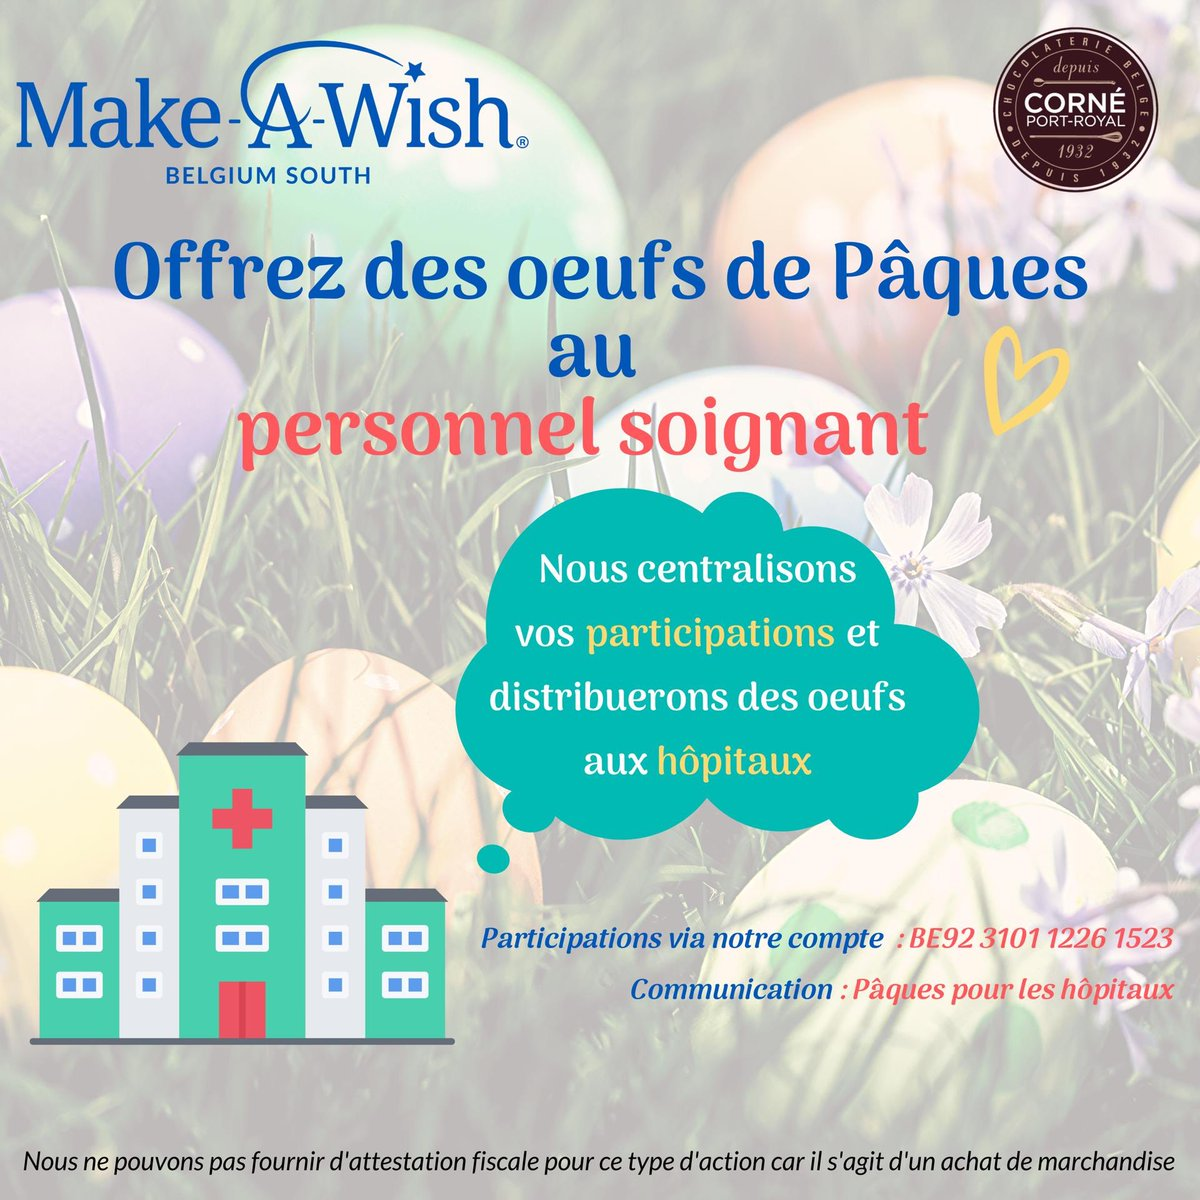 Make-A-Wish Belgium South wants to thank the hospital staff in Belgium by offering them Easter eggs 🐣 As godfather of Make-A-Wish, do like me and support them by paying the amount of your choice!  #makeawish #makeawishbelgiumsouth #onestensemble 👍🏿👌🏿 https://t.co/CdyATfv5CW